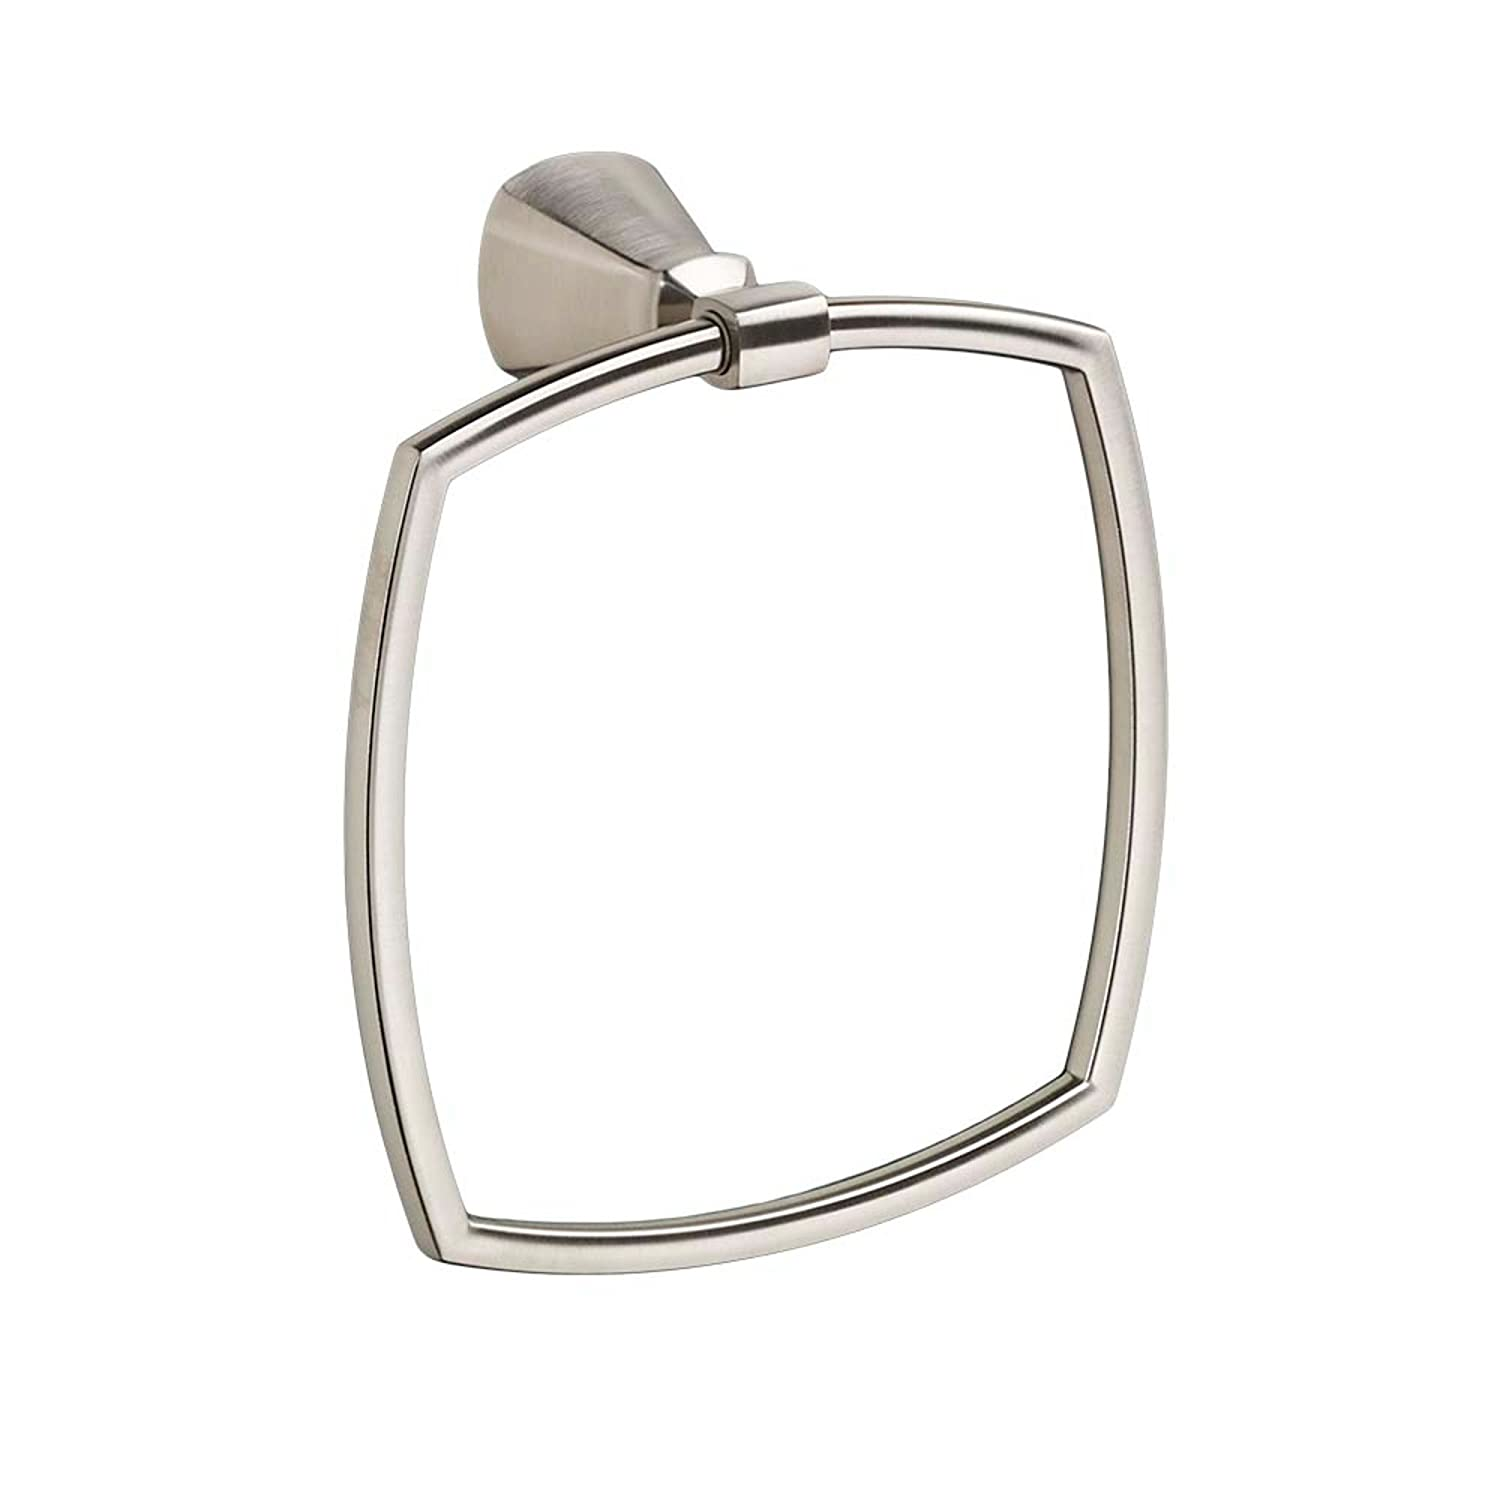 American Standard 7018190.295 Edgemere Bathroom Towel Ring, Brushed Nickel